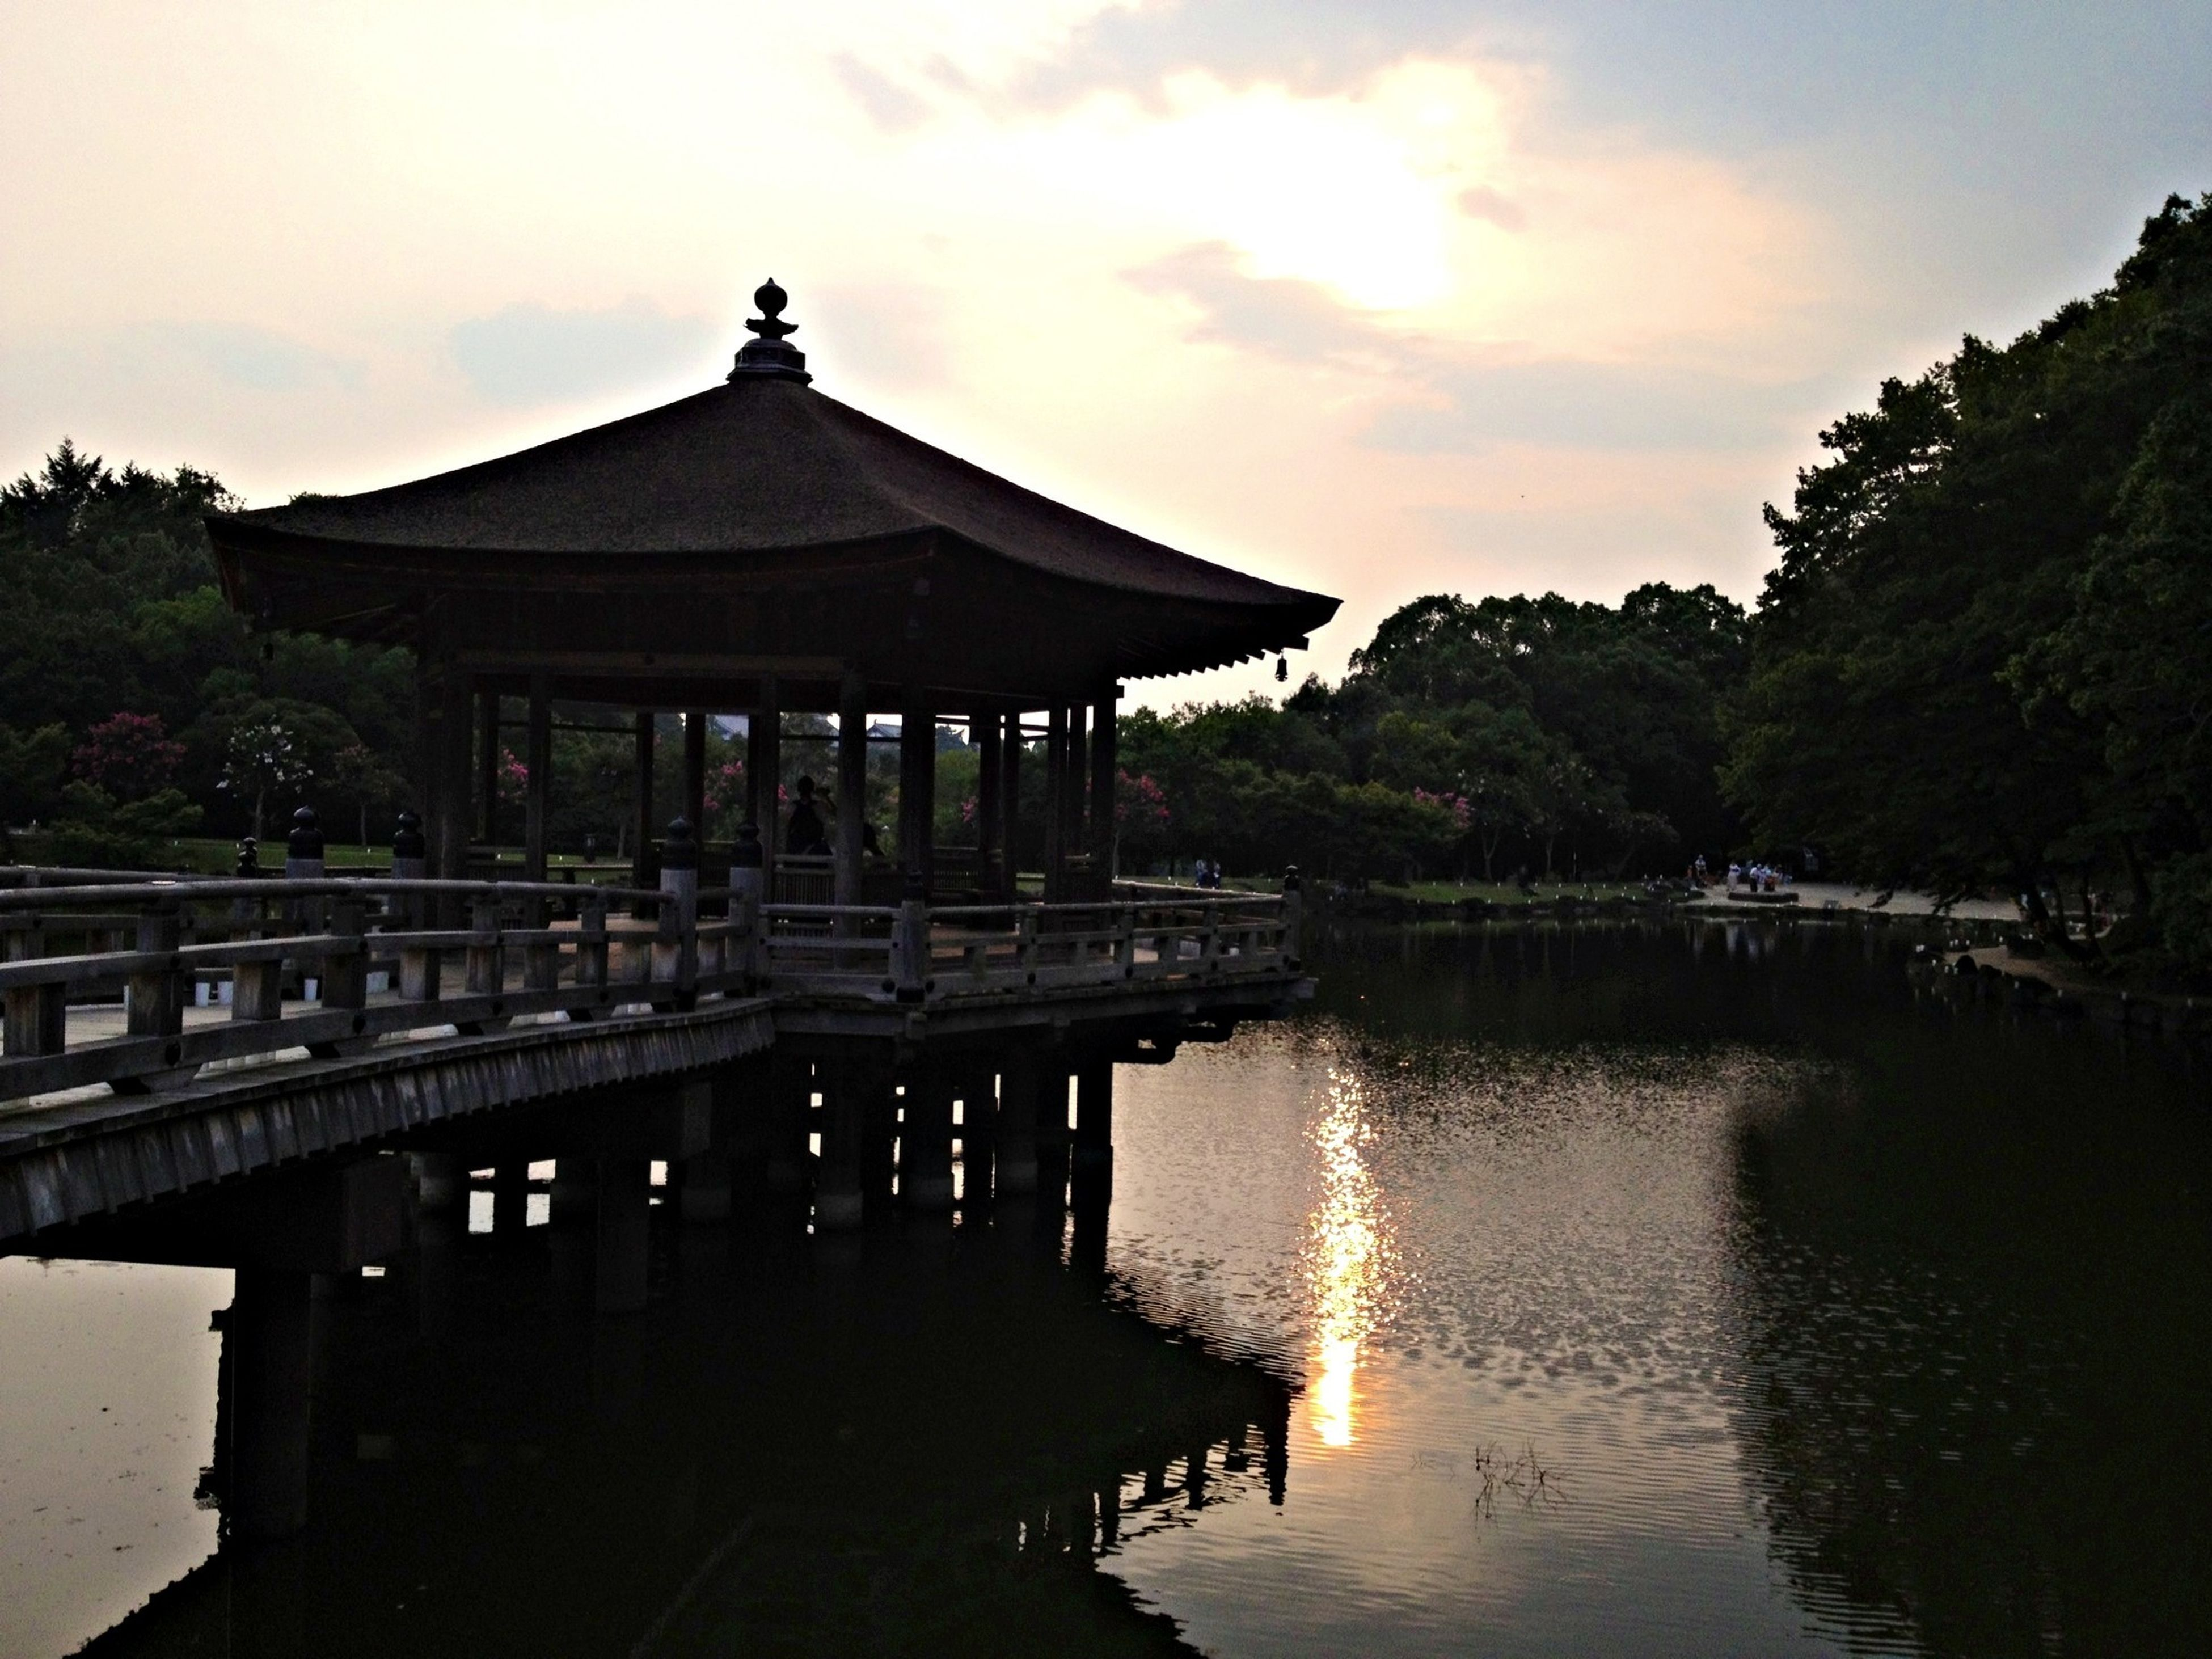 built structure, architecture, water, building exterior, reflection, tree, sky, lake, waterfront, sunset, place of worship, religion, river, spirituality, tranquility, gazebo, temple - building, cloud - sky, nature, tranquil scene